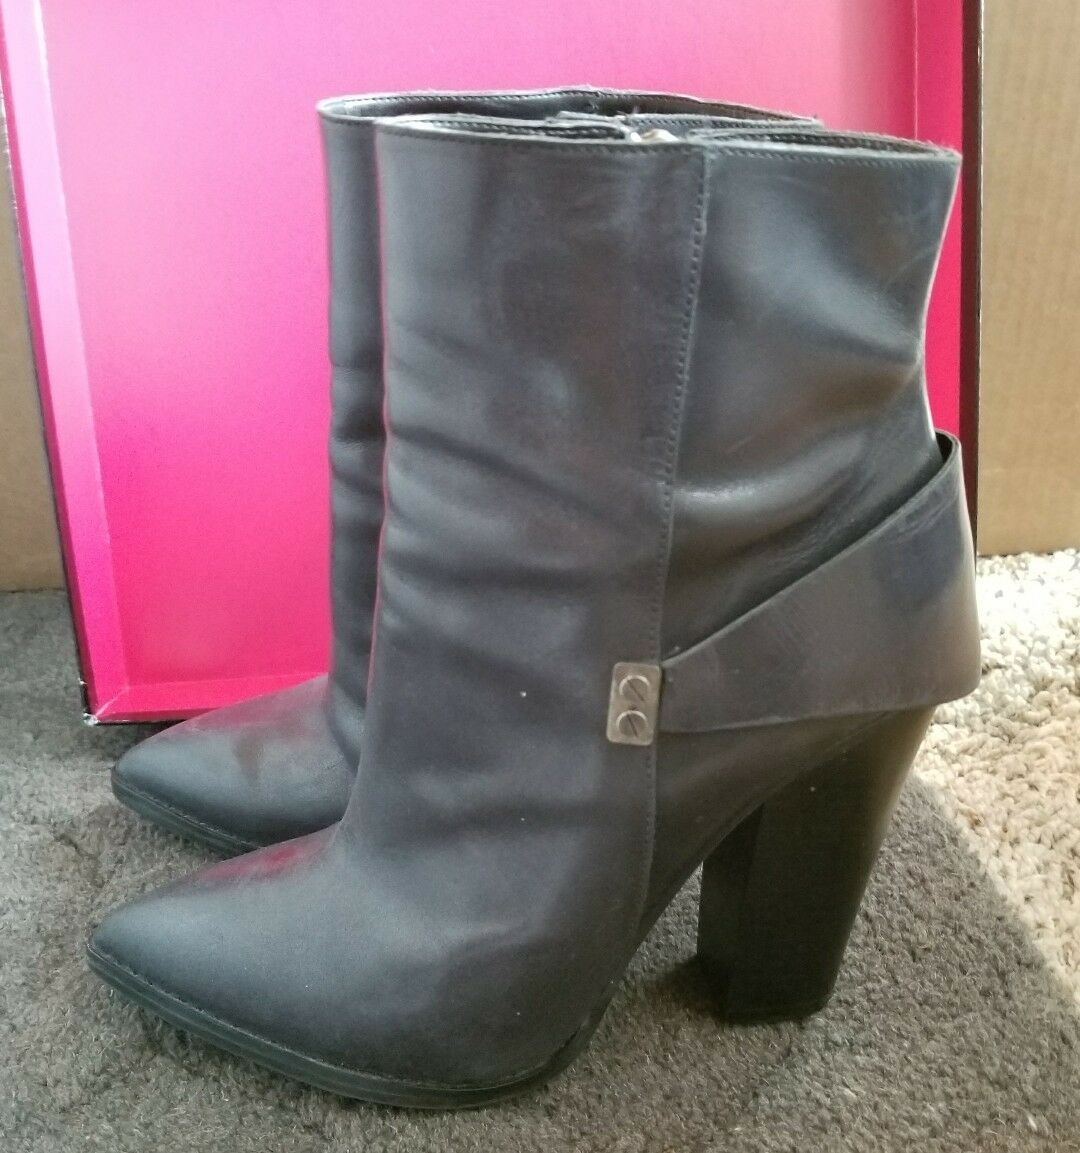 NINE WEST 9W INSTYLE Black Leather Comete Ankle Boots Booties WOMENS SZ 7.5 EUC